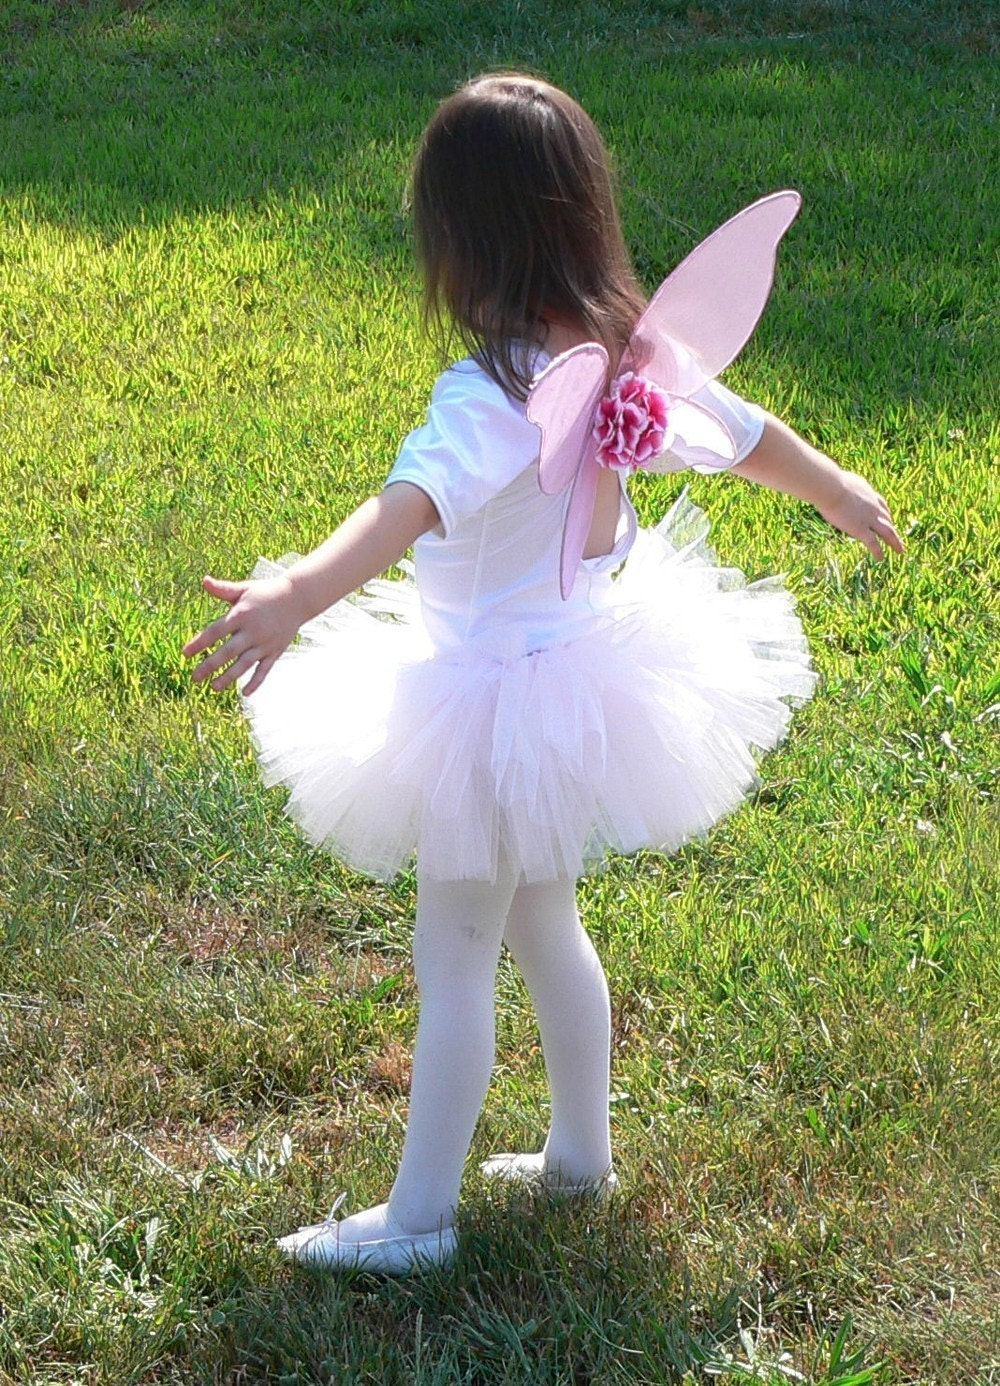 Design Your Own Custom Tutu - NO limit on colors - 8 inch length - FREE coordinating bow and flower hair clip - SALE